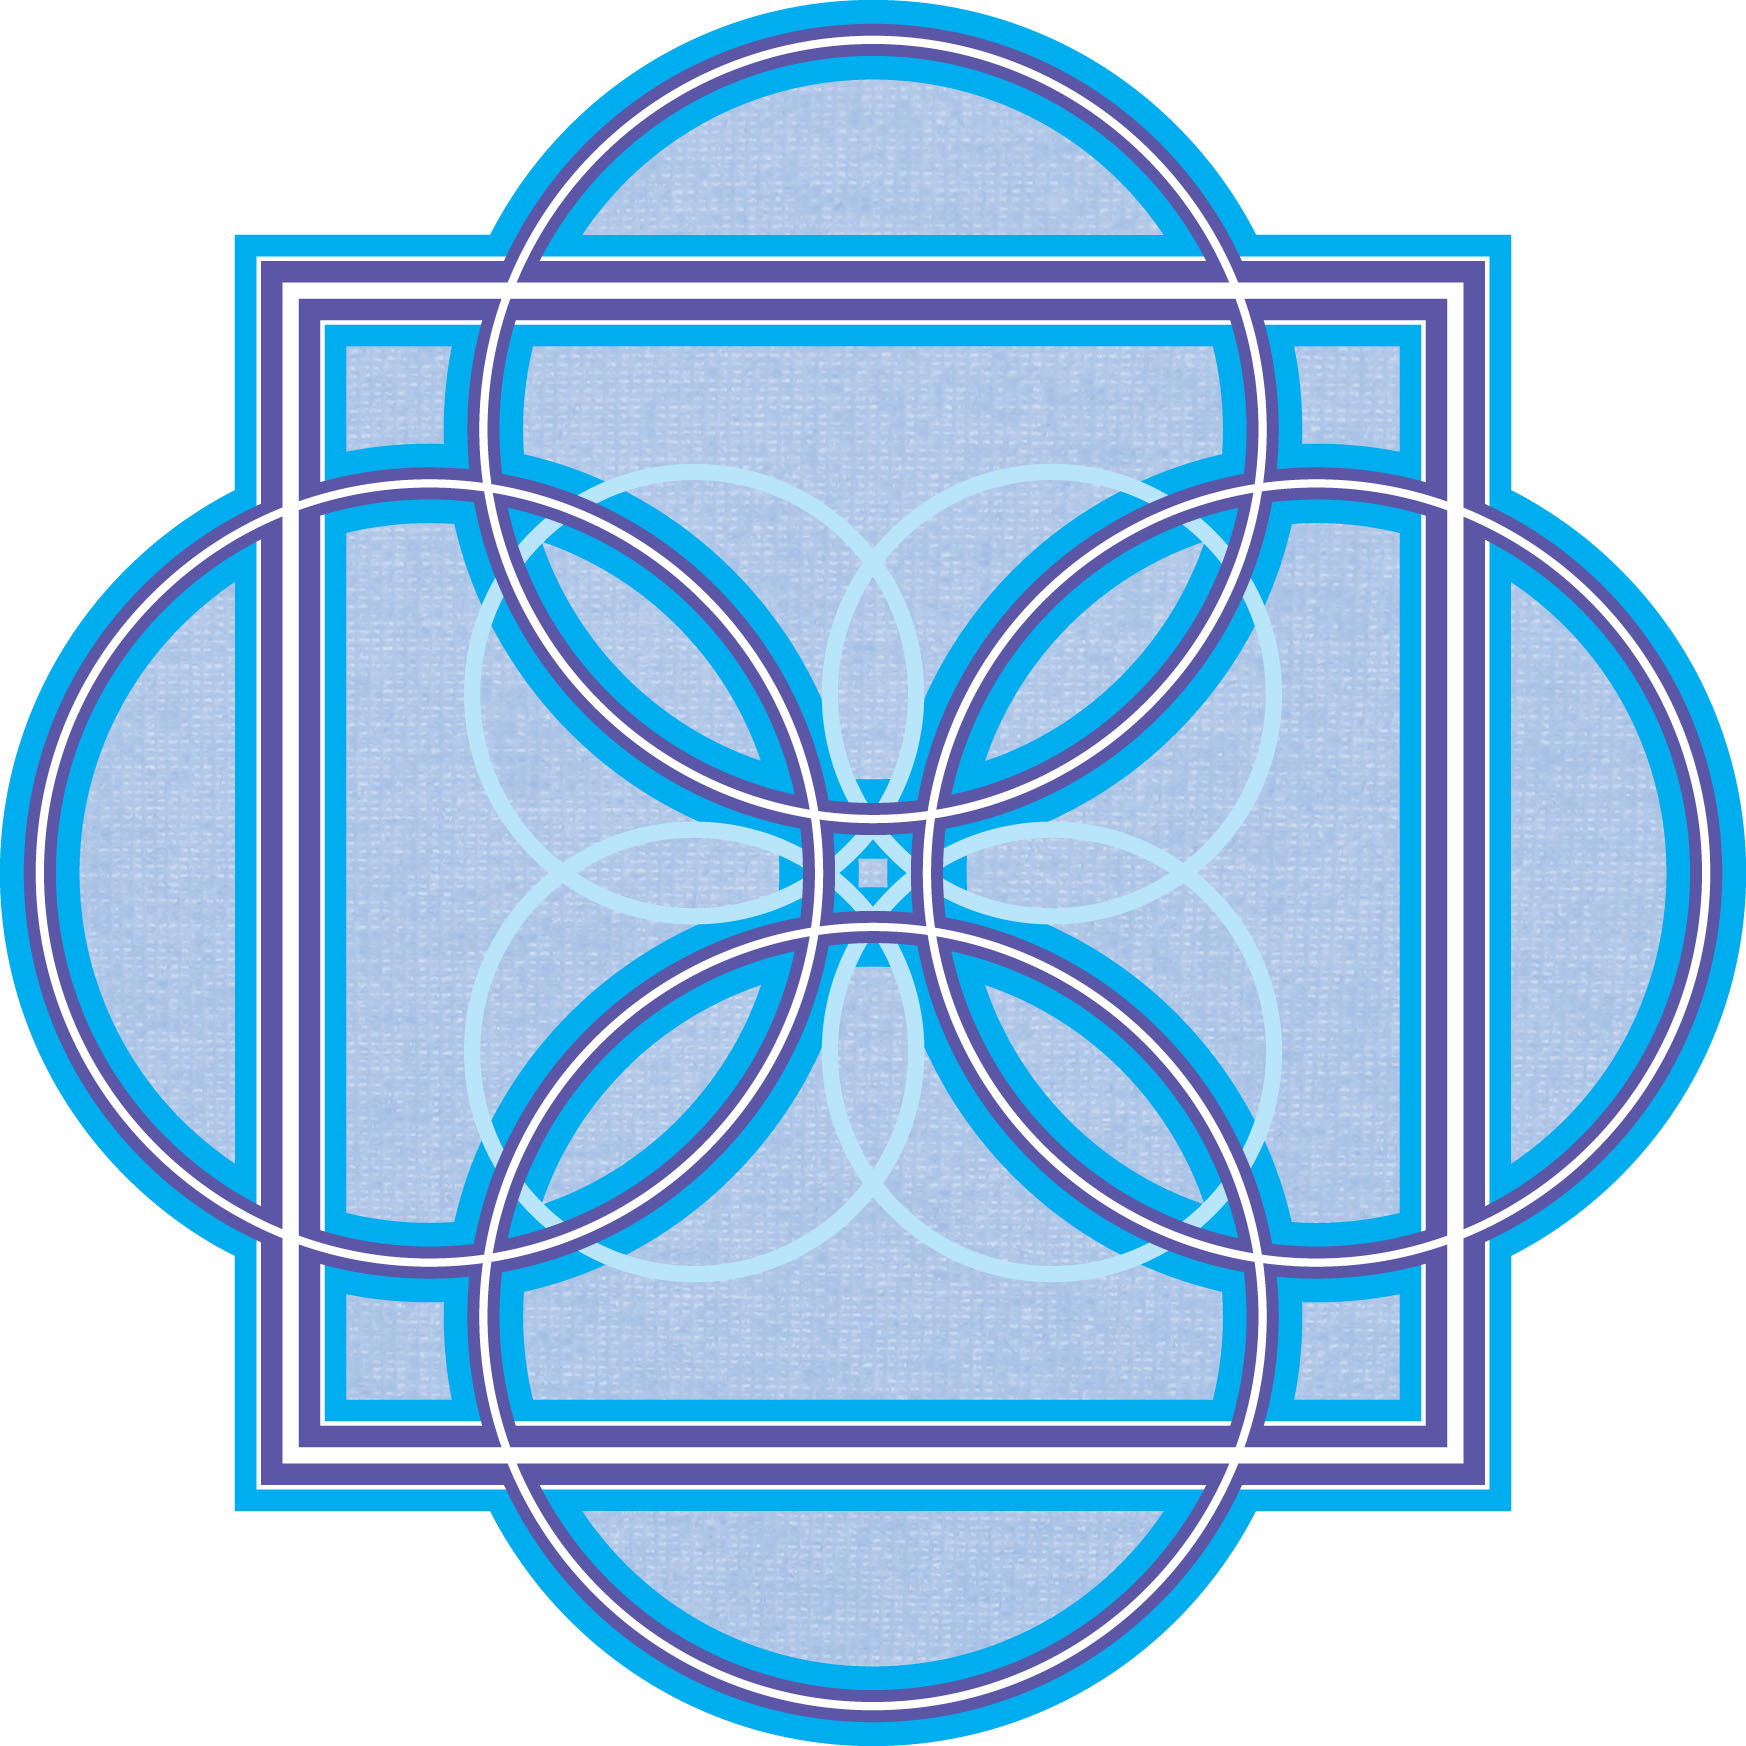 Quatrefoil family of christ lutheran church the word quatrefoil comes from the latin for four leaves a quatrefoil in art or architecture is the outline of four partially overlapping circles of the biocorpaavc